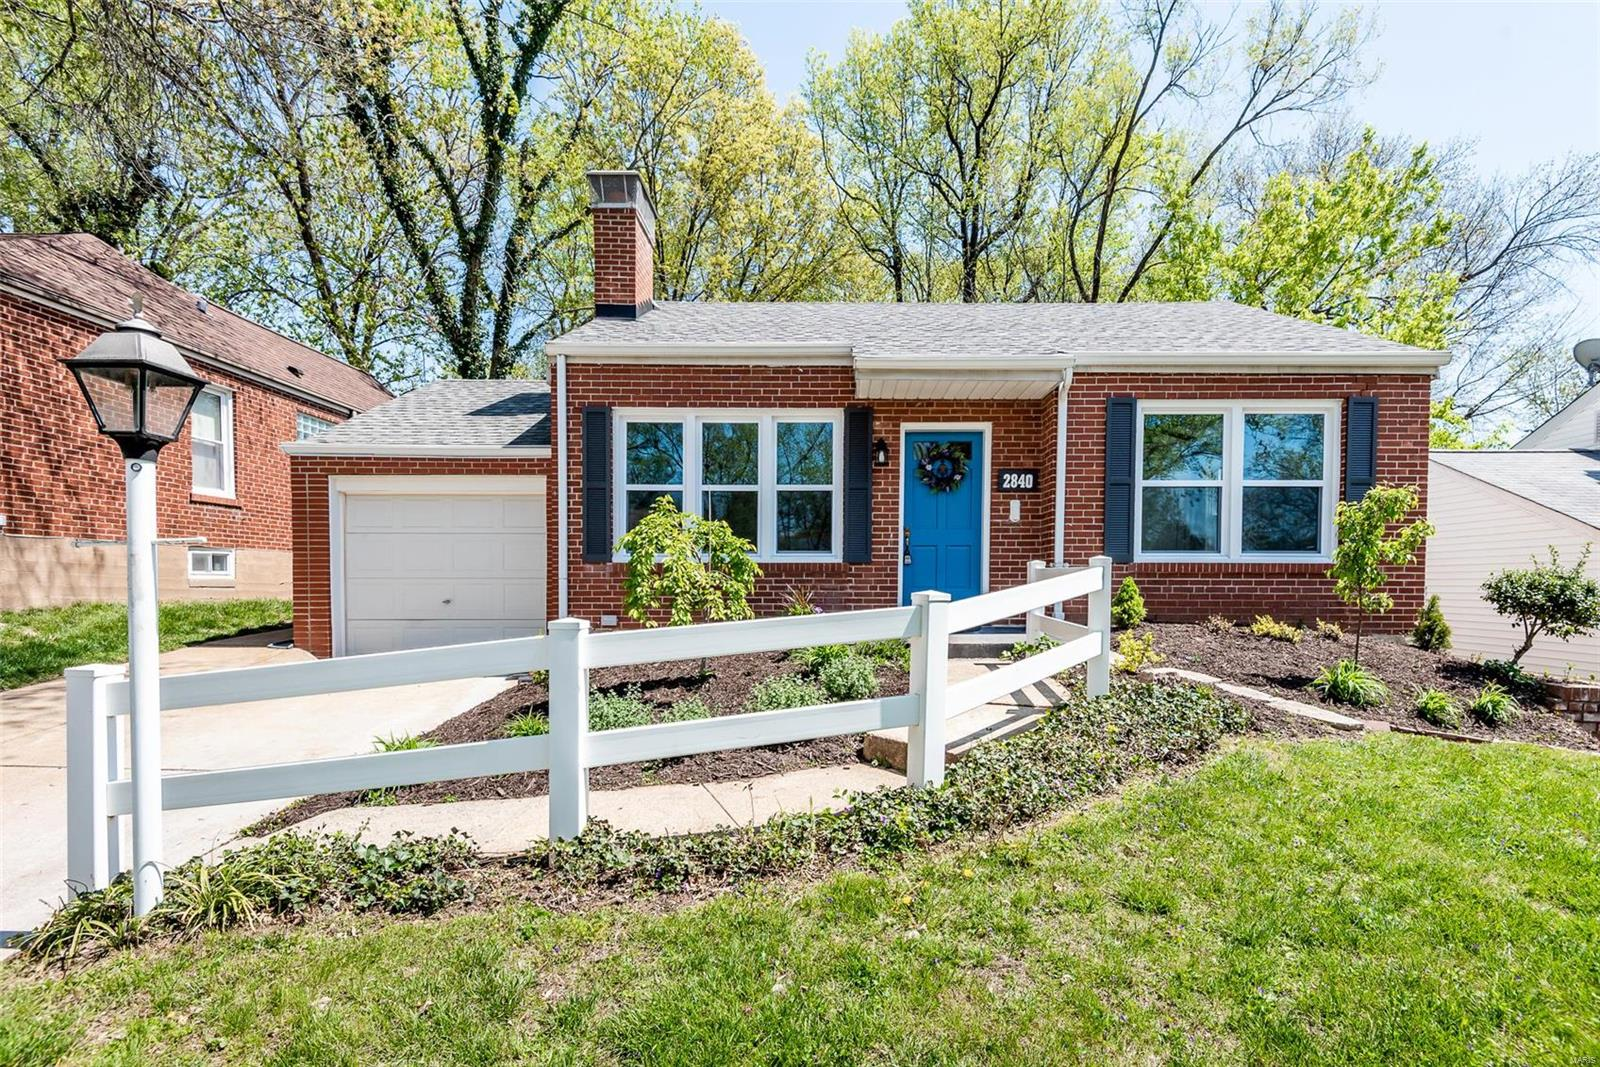 2840 Manderly Property Photo - St Louis, MO real estate listing